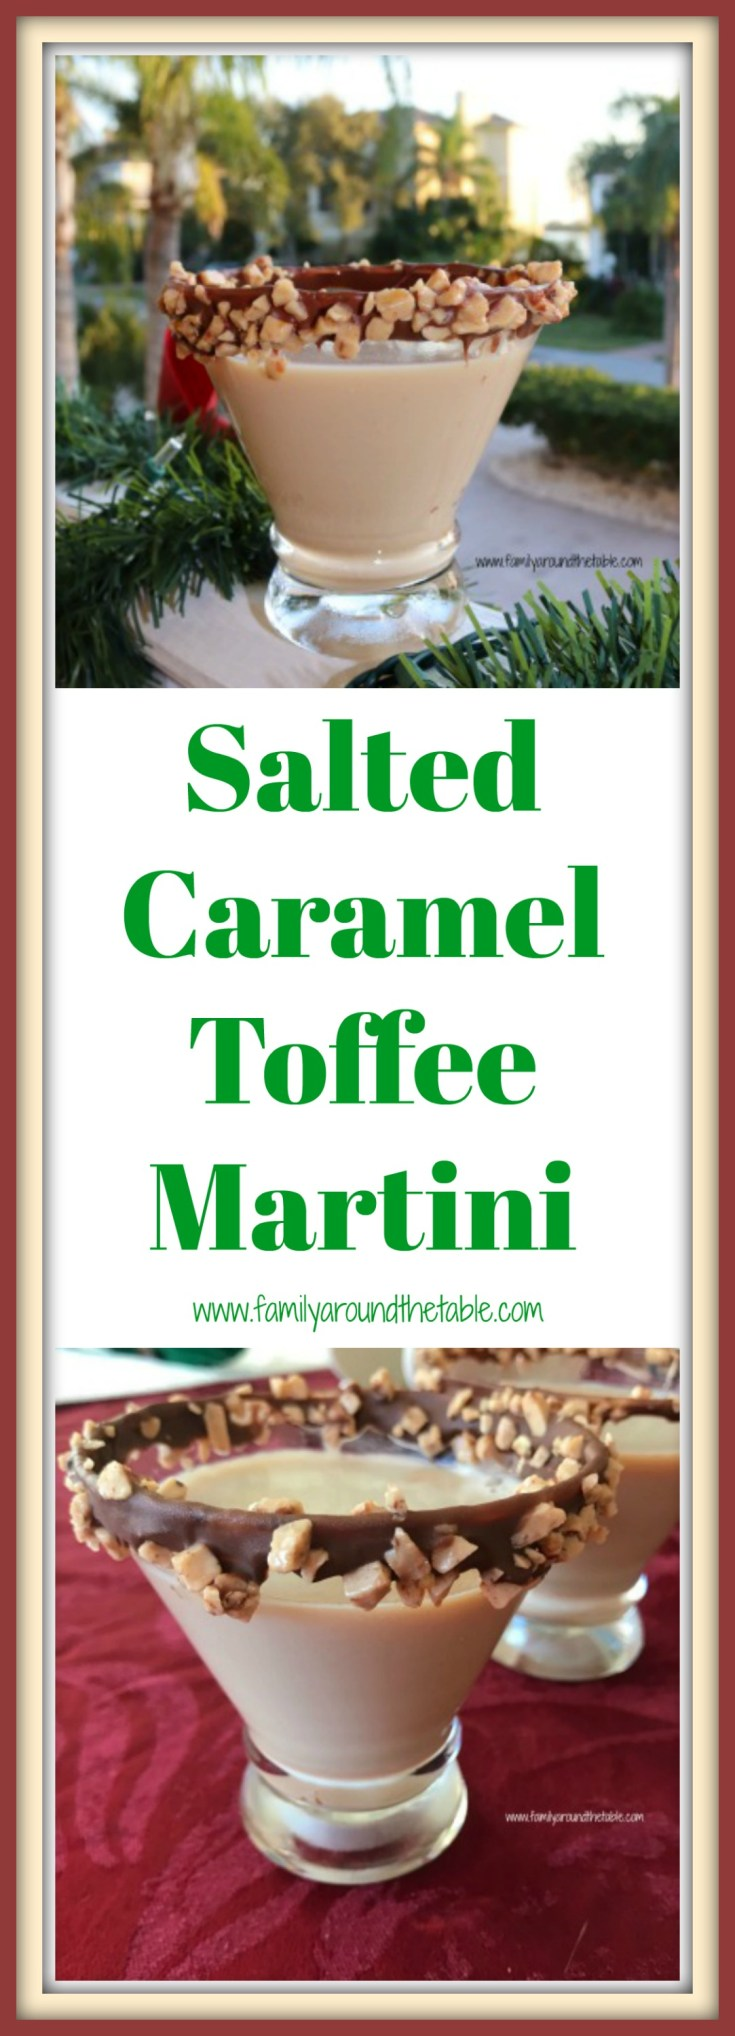 Salted Caramel Toffee Martini is a festive drink for any holiday party.